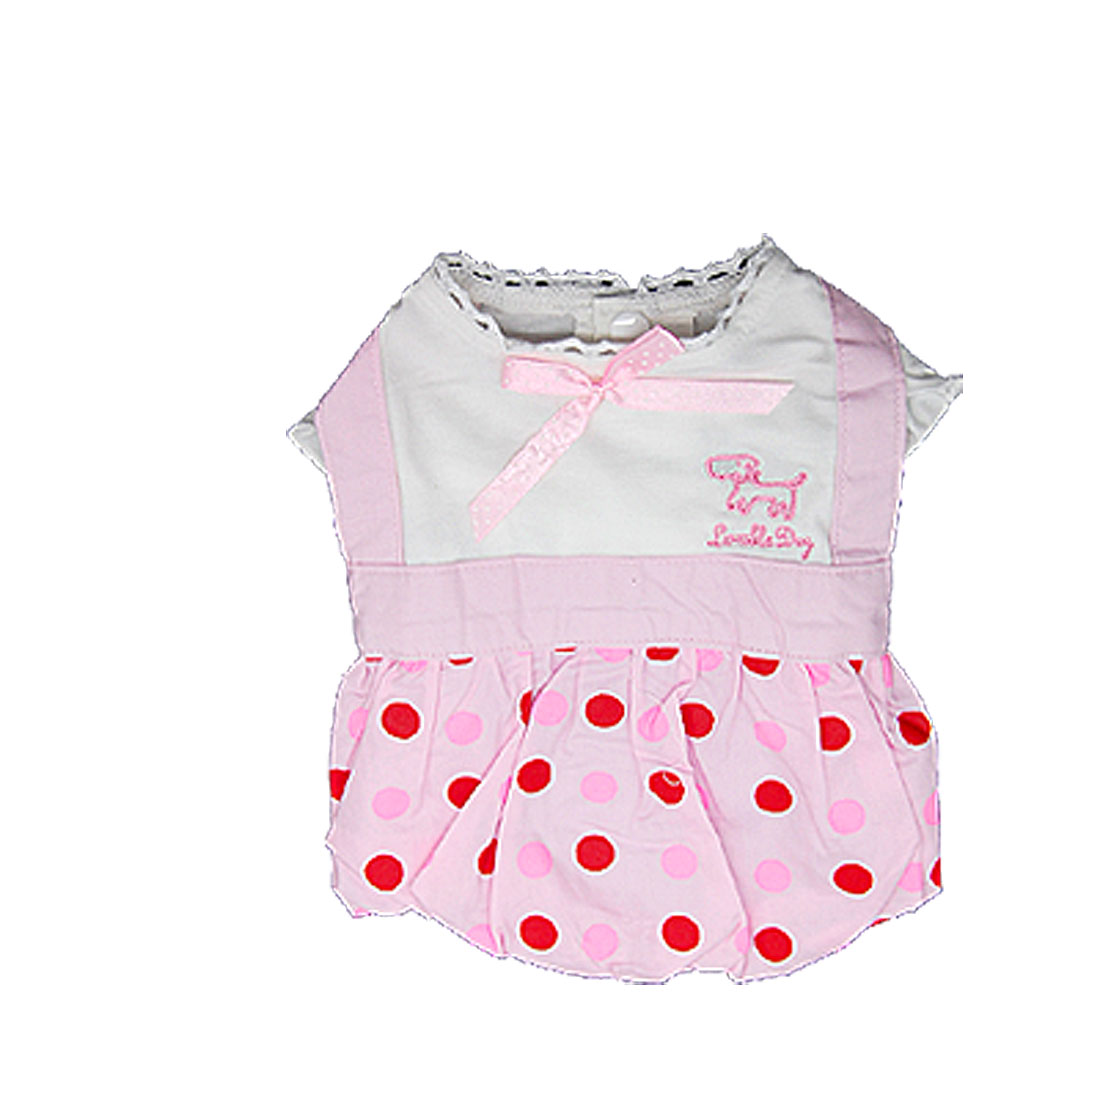 Size 5 Cute Pink Pet Puppy Dog Apparel Polka Dot Dress Skirts Shirts With Scarf